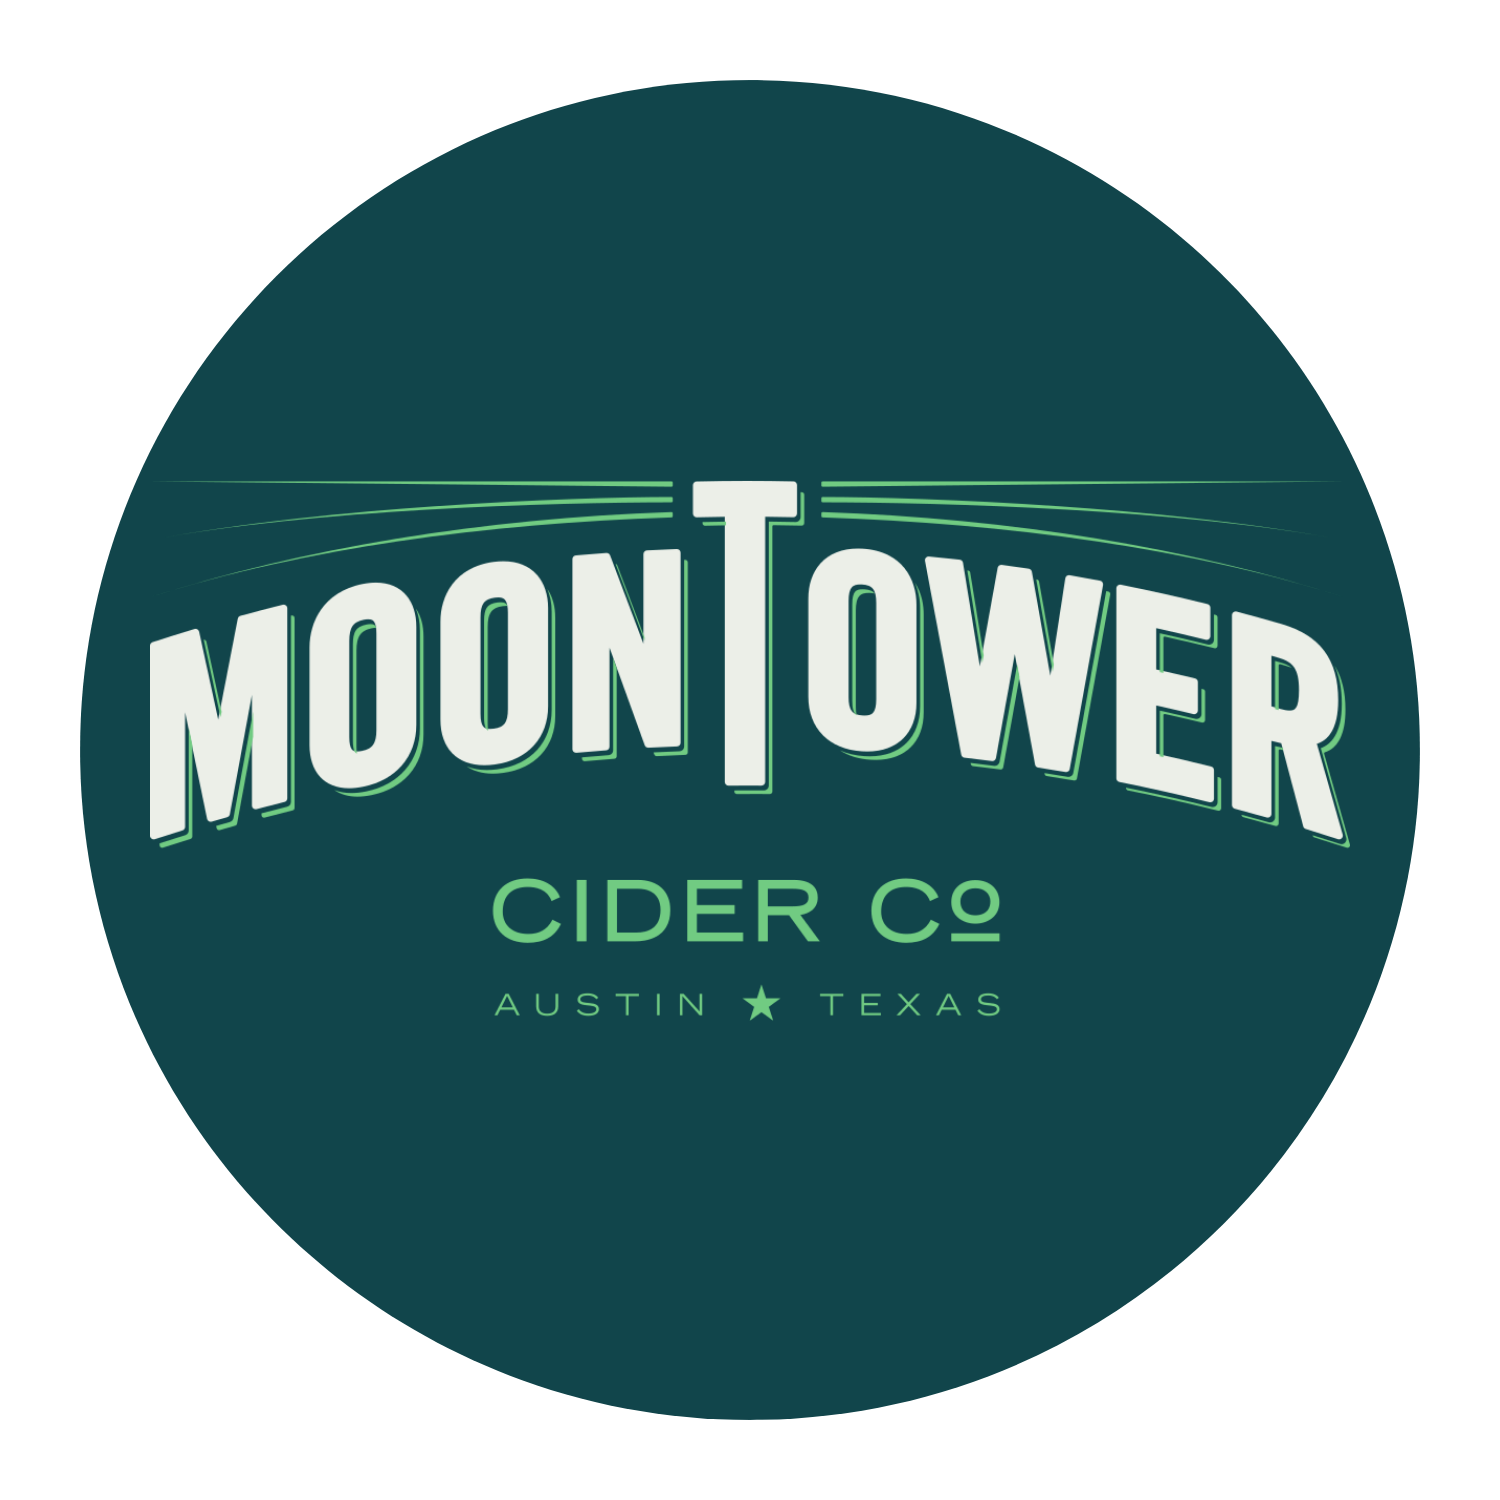 Moontower Cider Co. logo